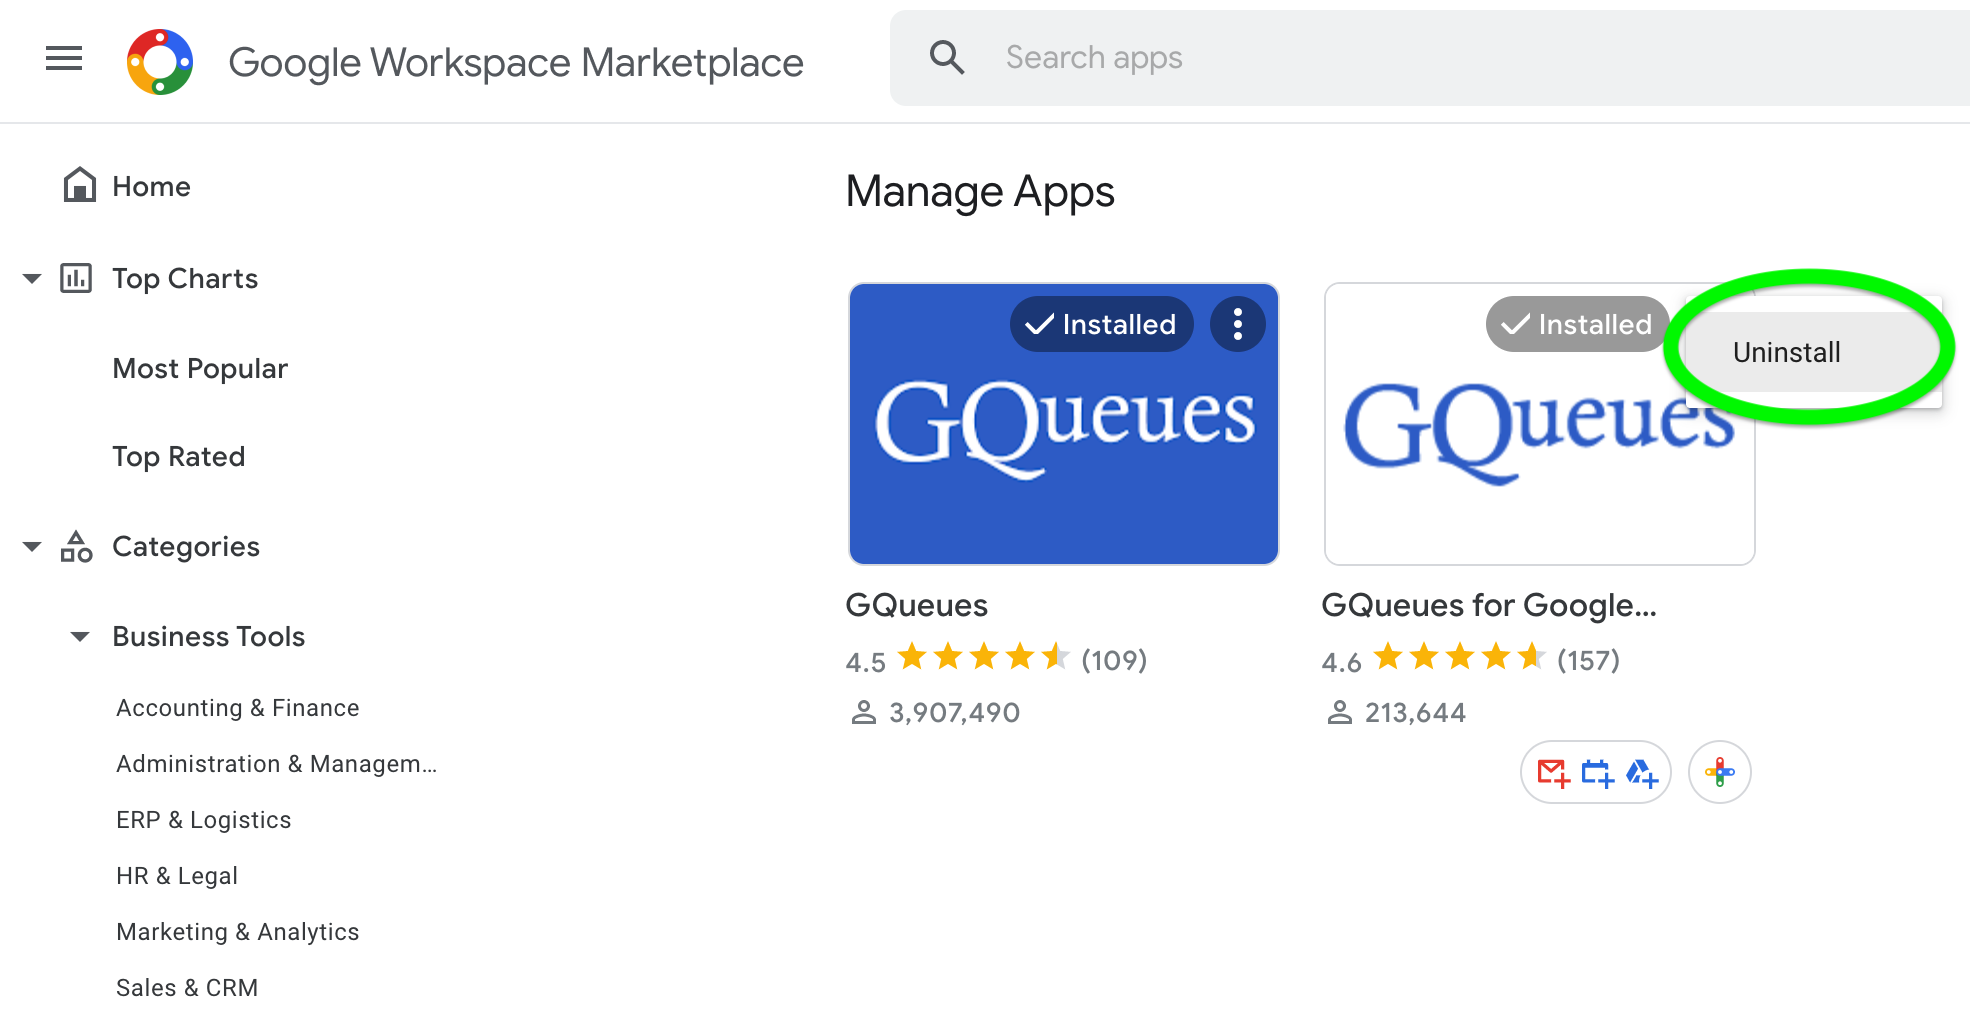 Open the menu for the GQueues for Google Workspace Add-on and select Uninstall